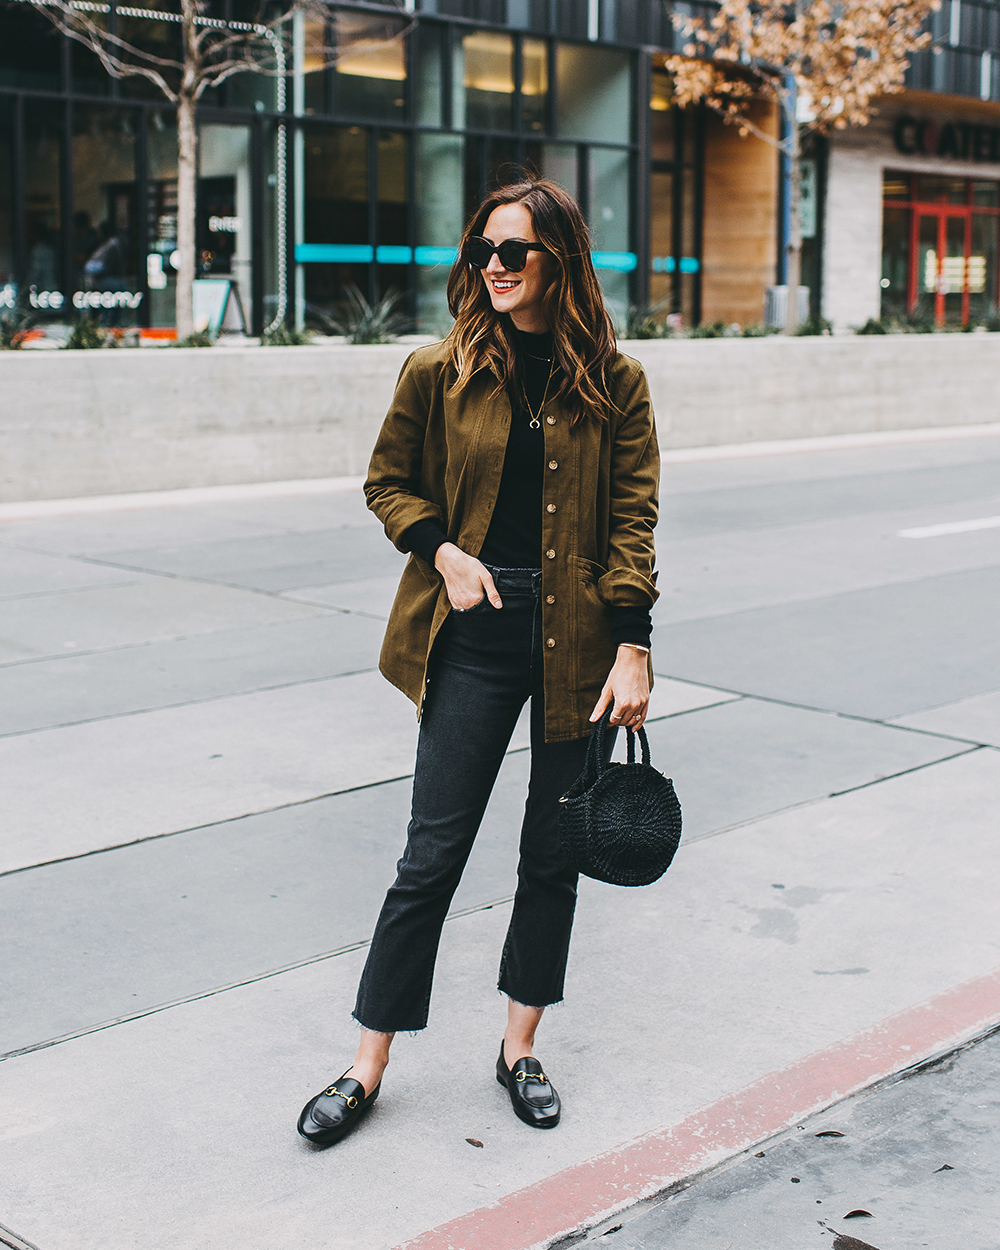 livvyland-blog-olivia-watson-austin-texas-fashion-blogger-fall-winter-all-black-sezane-will-khaki-jacket-outfit-missoma-horn-crescent-necklace-8